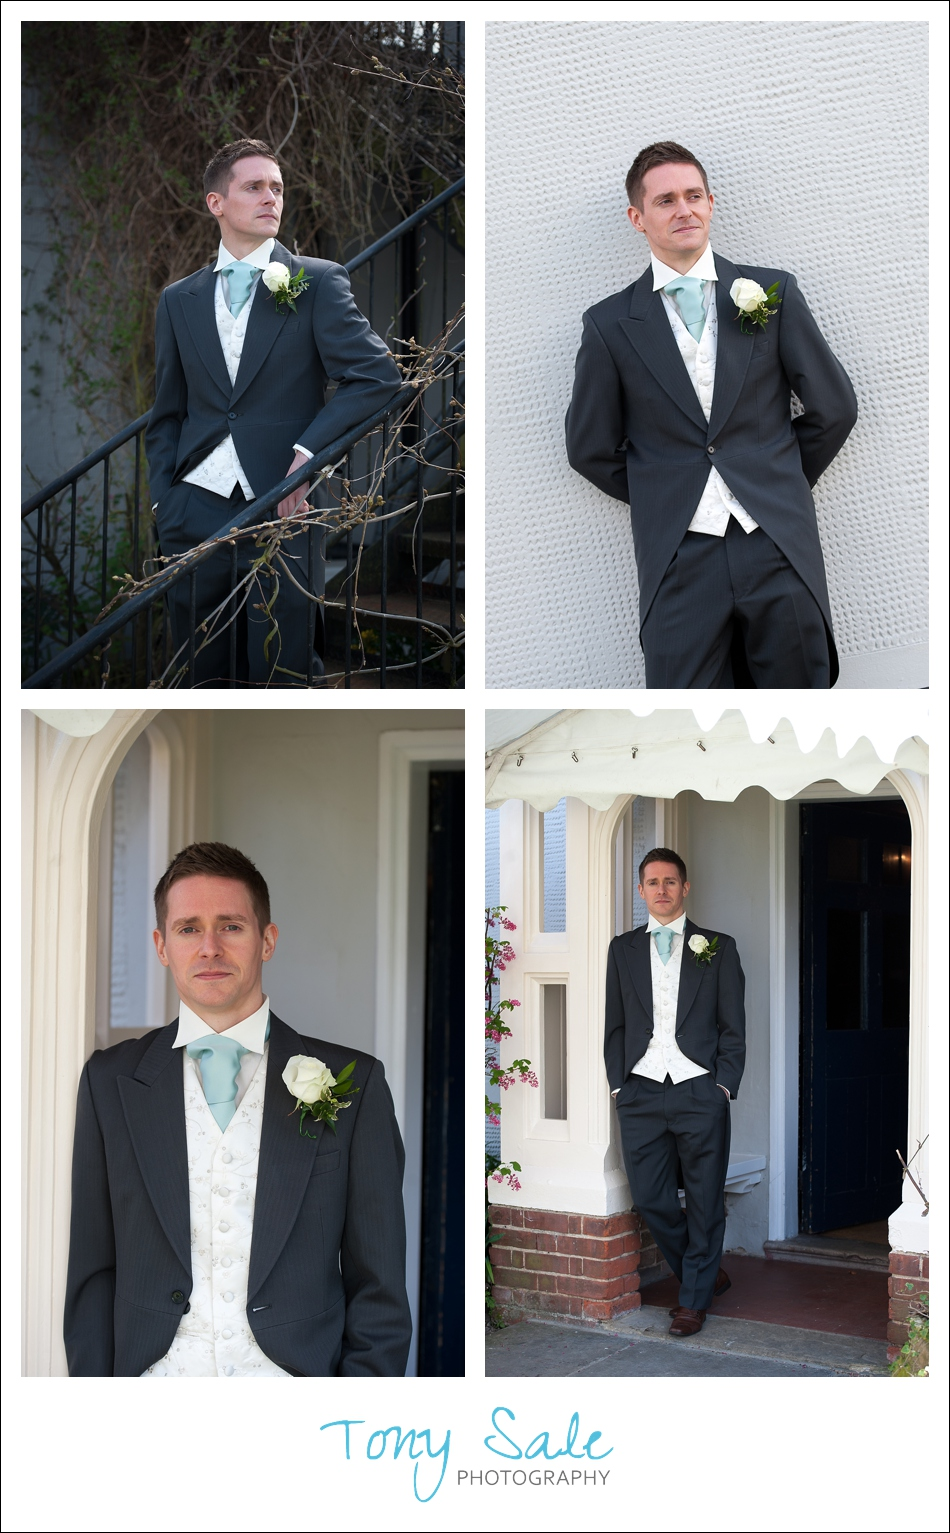 Taking photographs of the groom around the premises